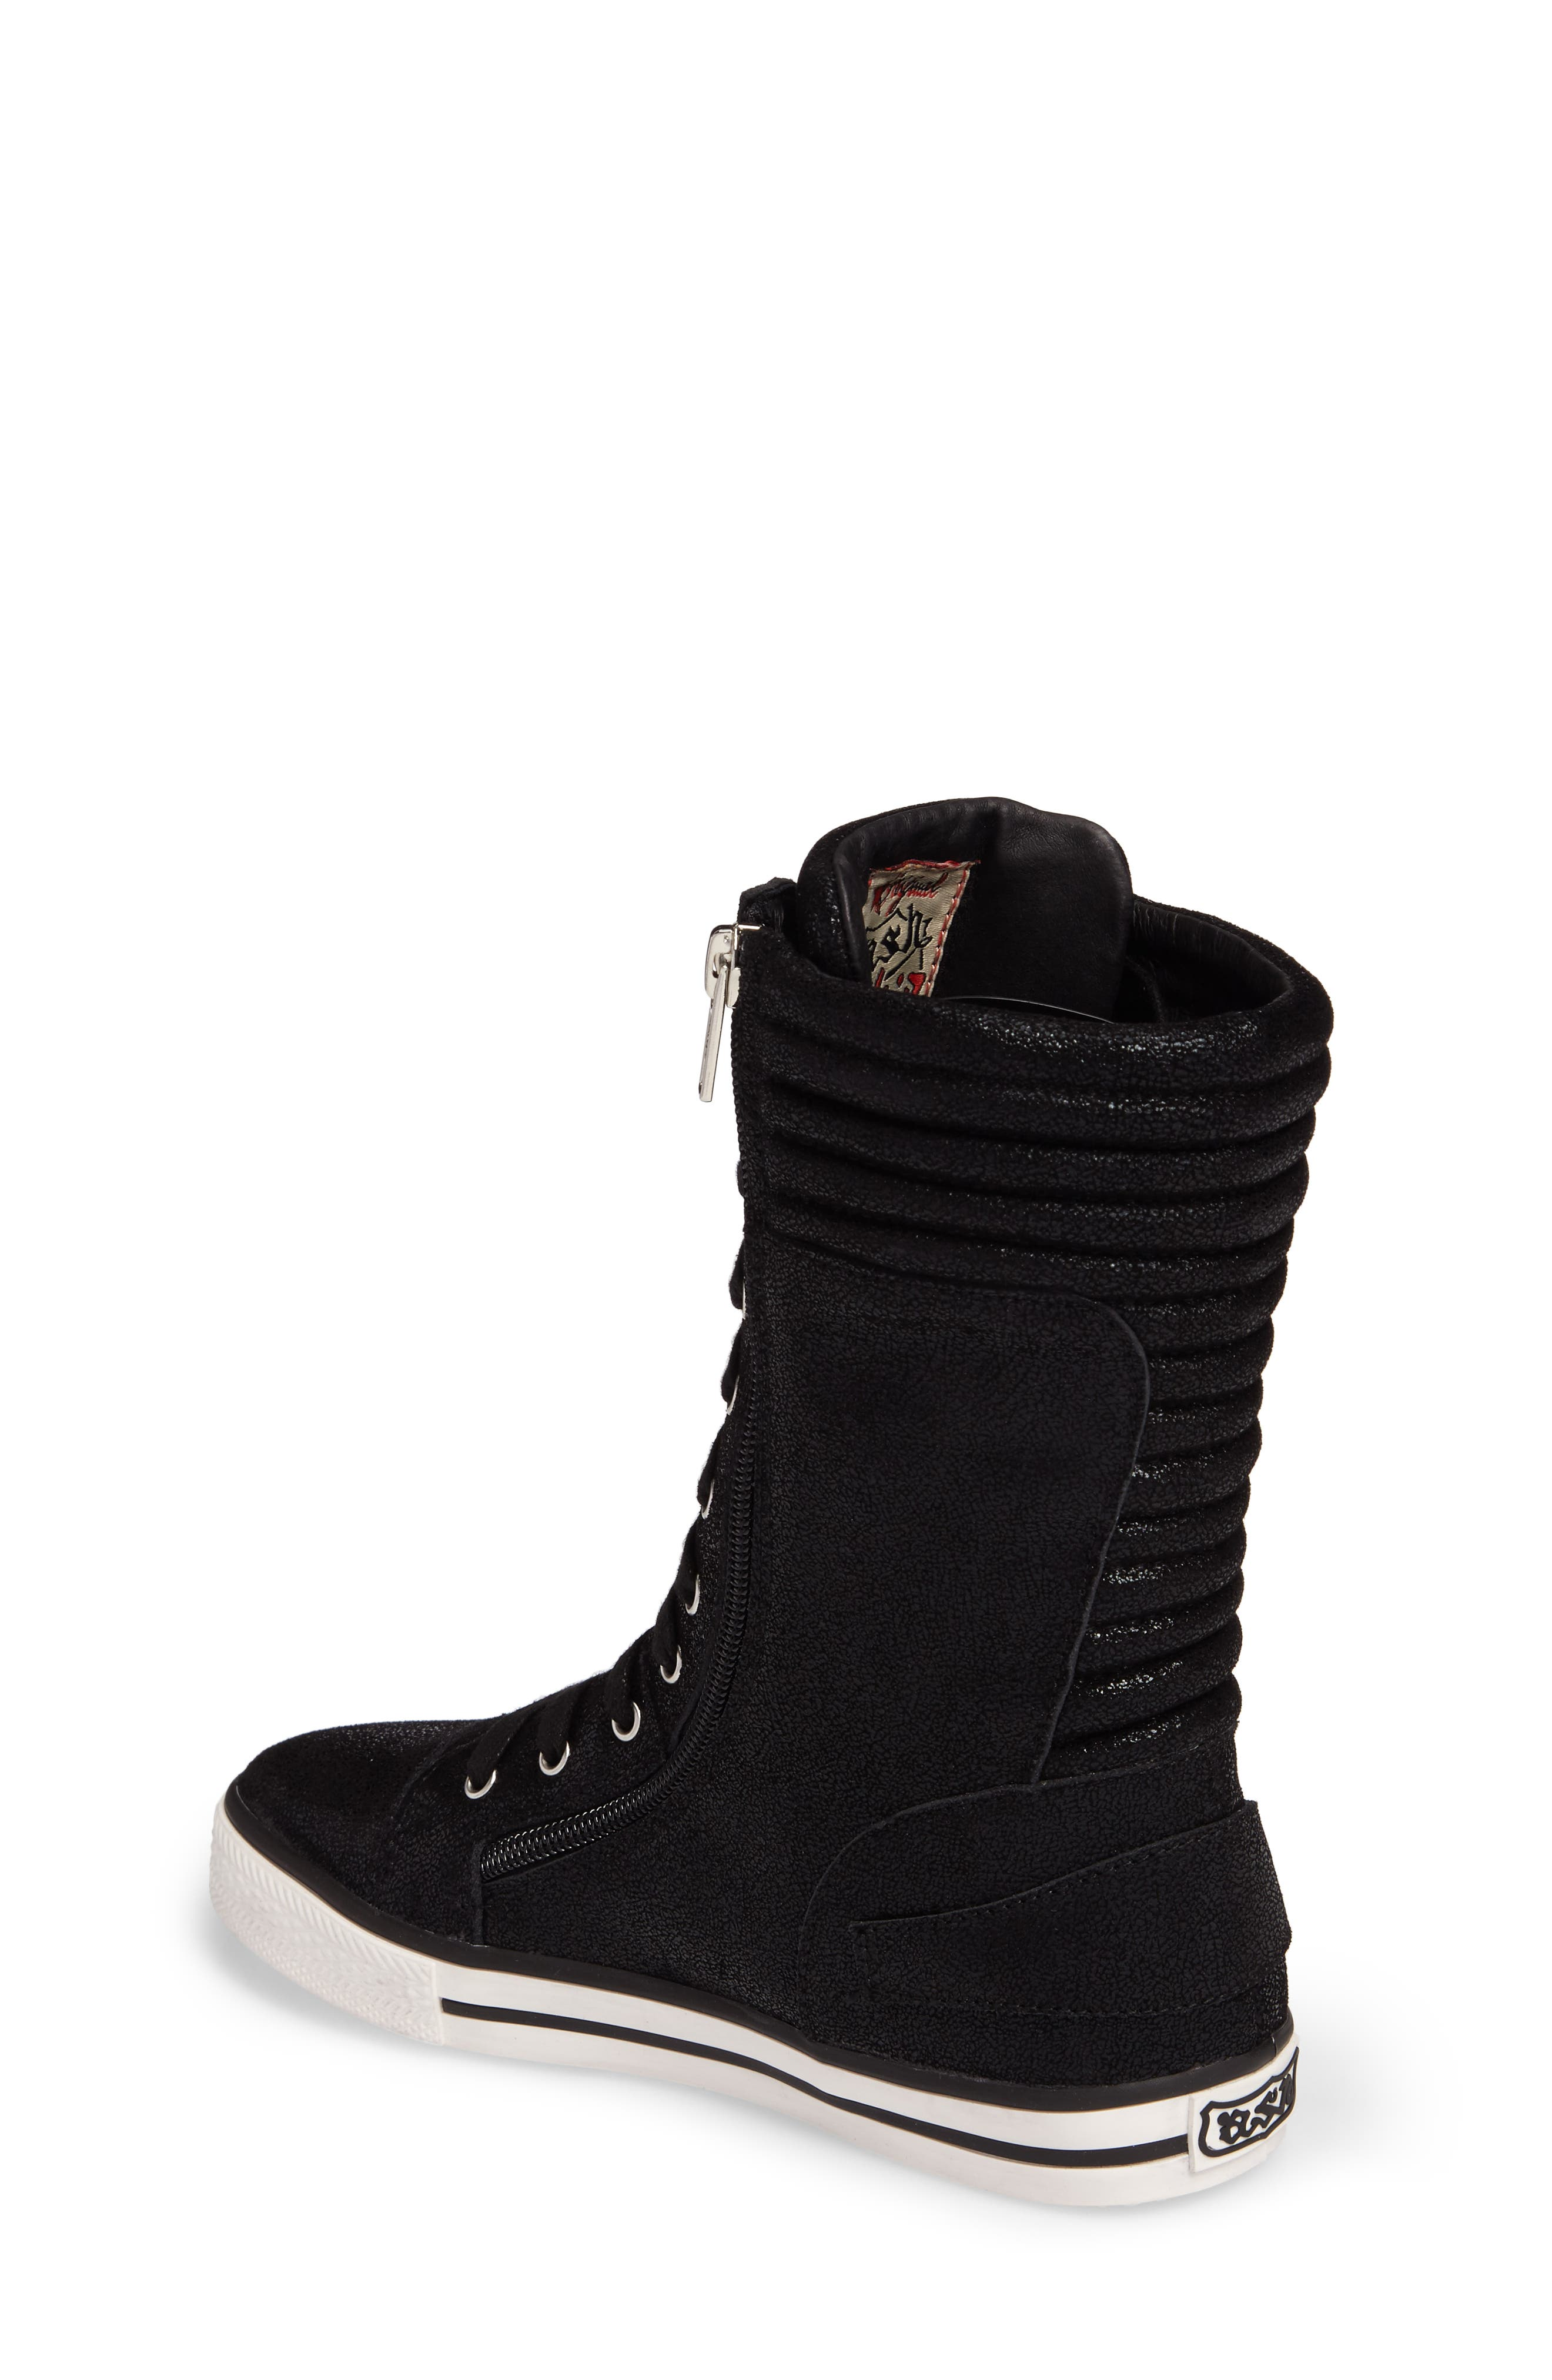 Vava Cate Ultra High Top Sneaker,                             Alternate thumbnail 2, color,                             001